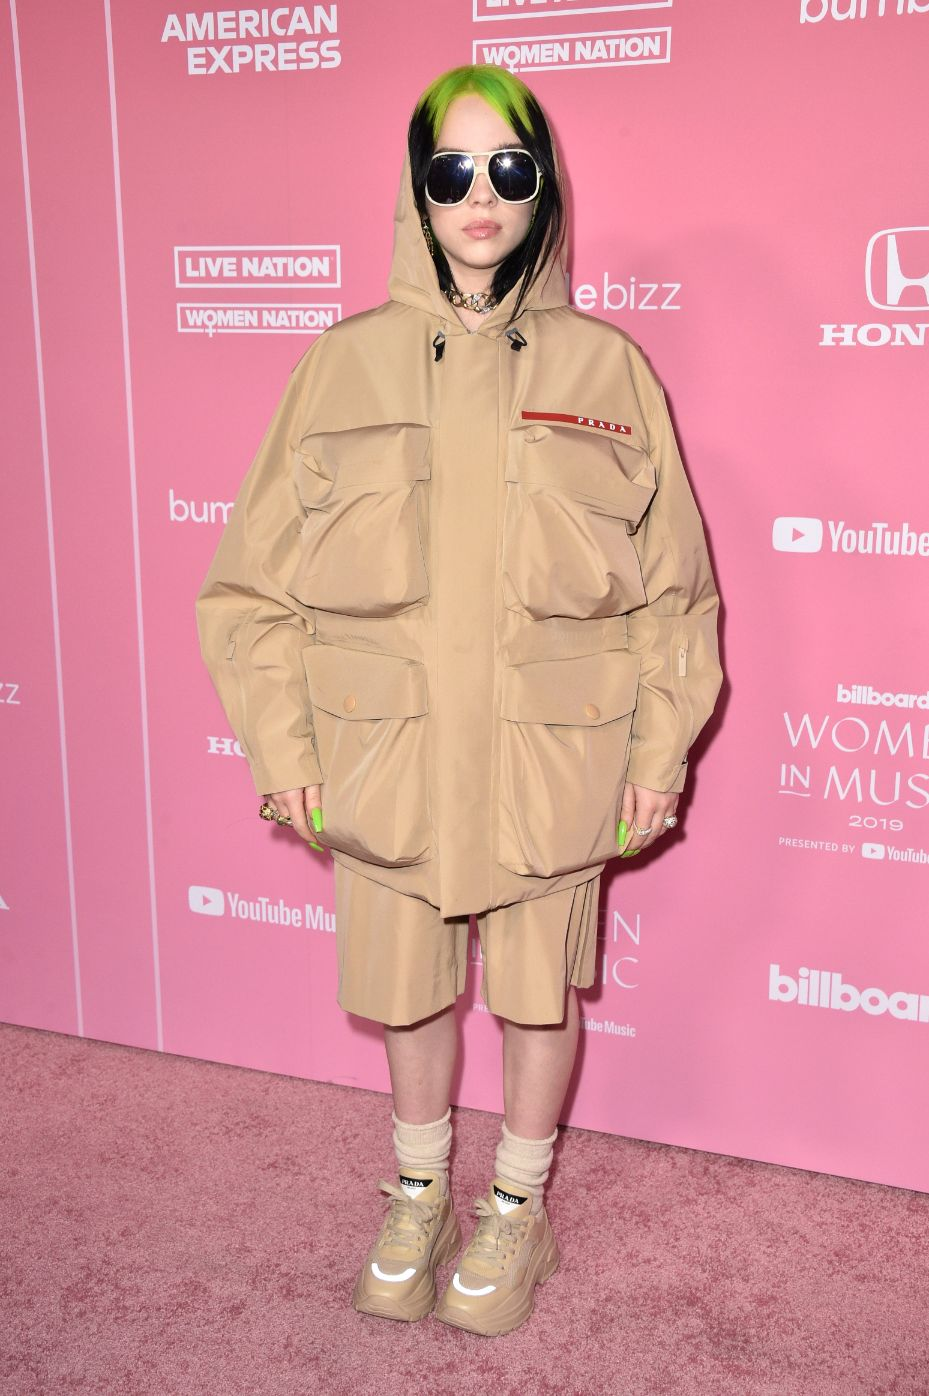 billie eilish, prada, billboard